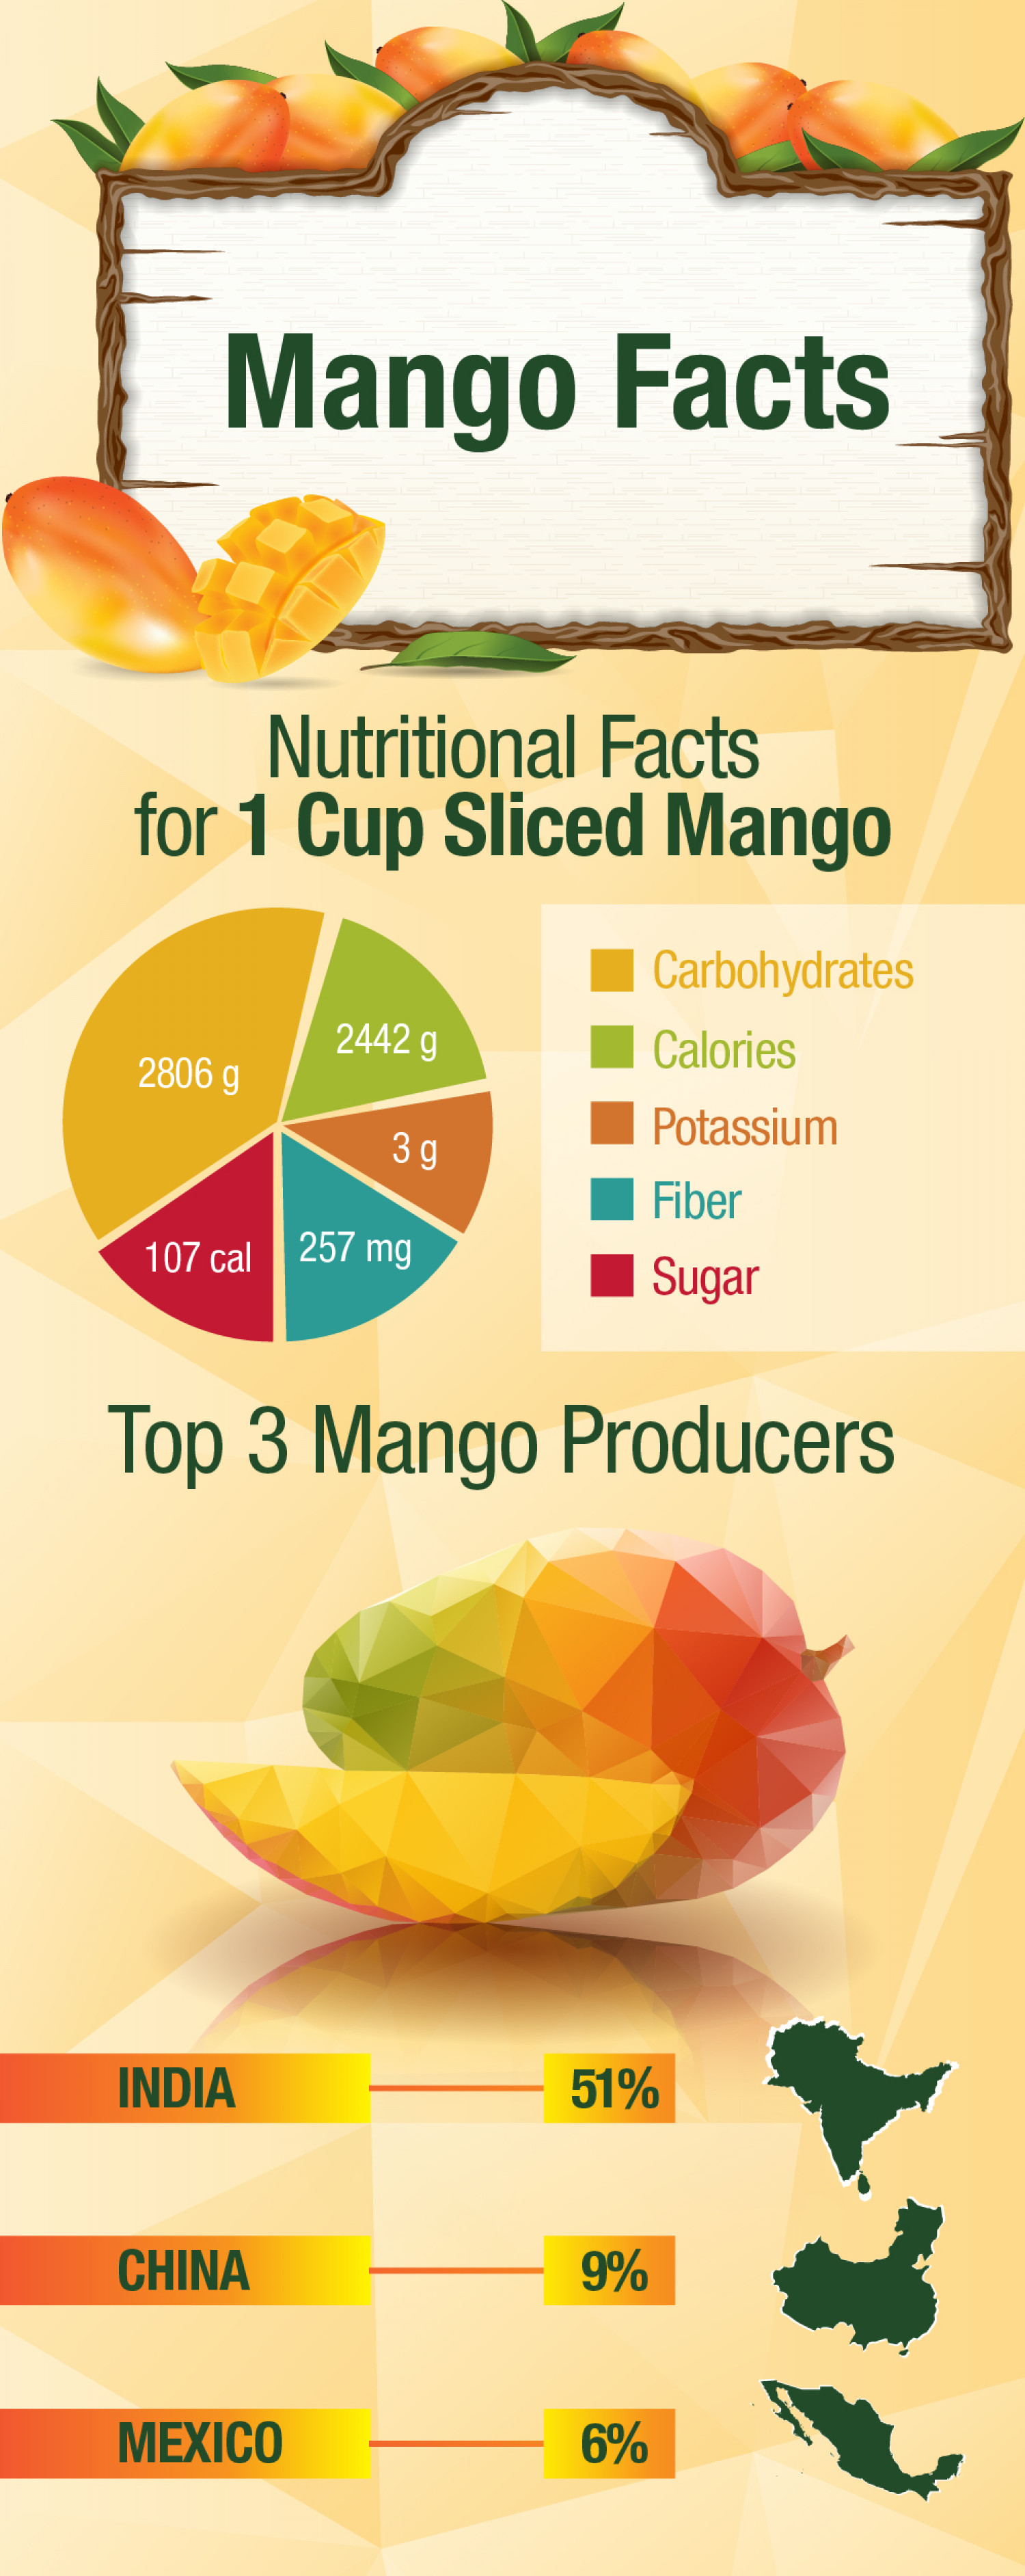 Nutritional Facts about Mangoes Infographic